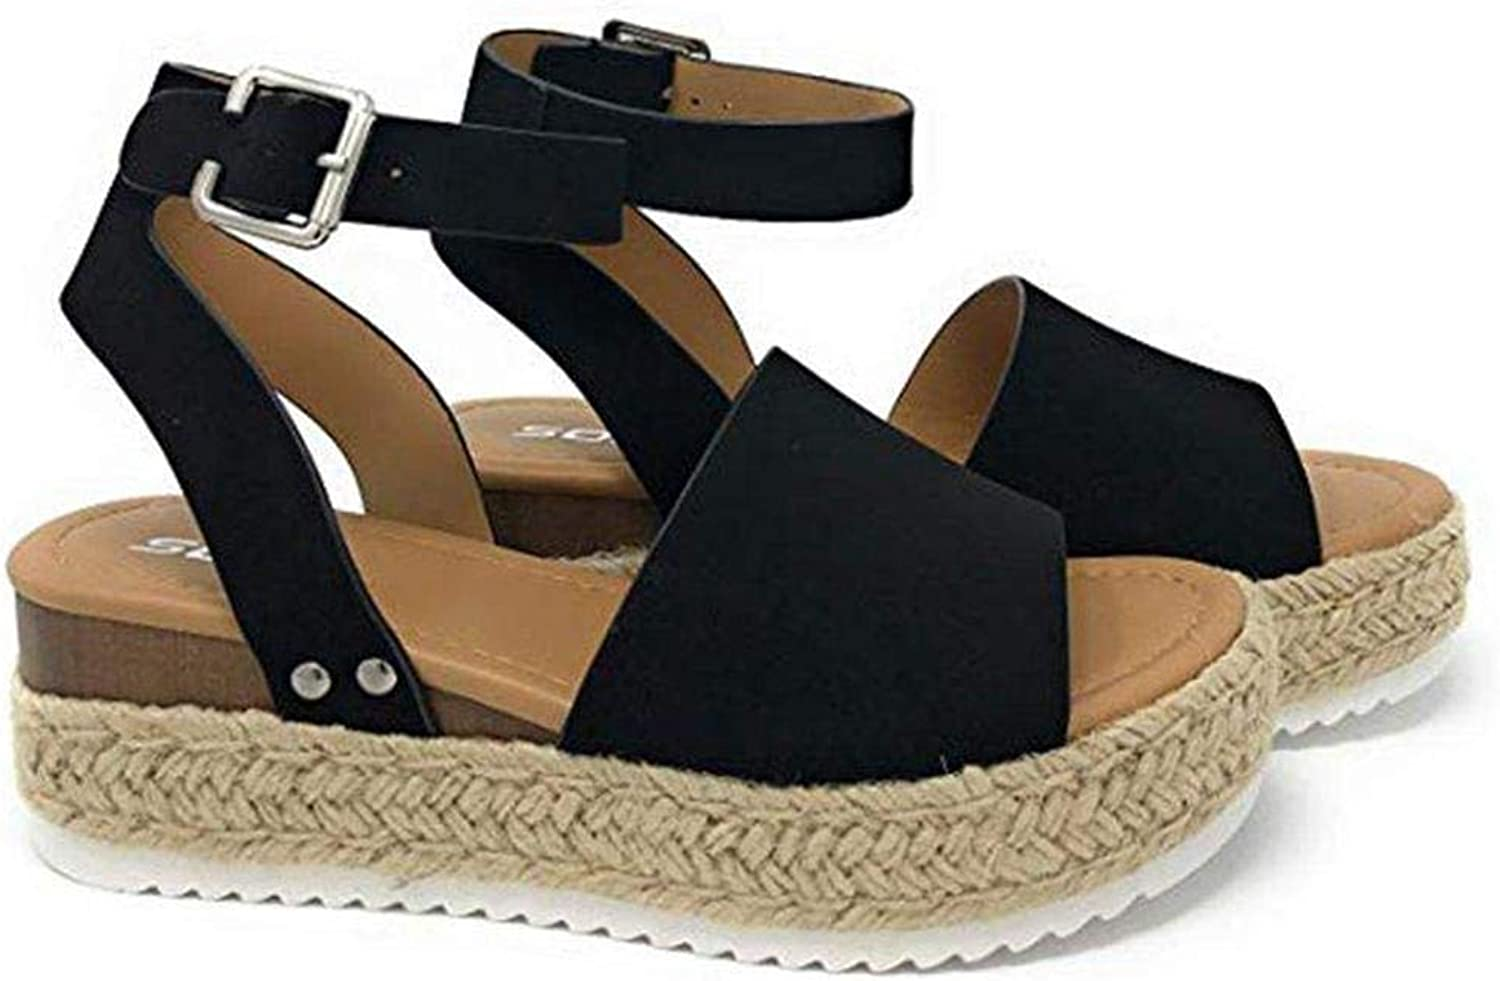 Queind Women Summer Non-Slip Fish Mouth Solid Wedge Heel Sandals shoes Sandals